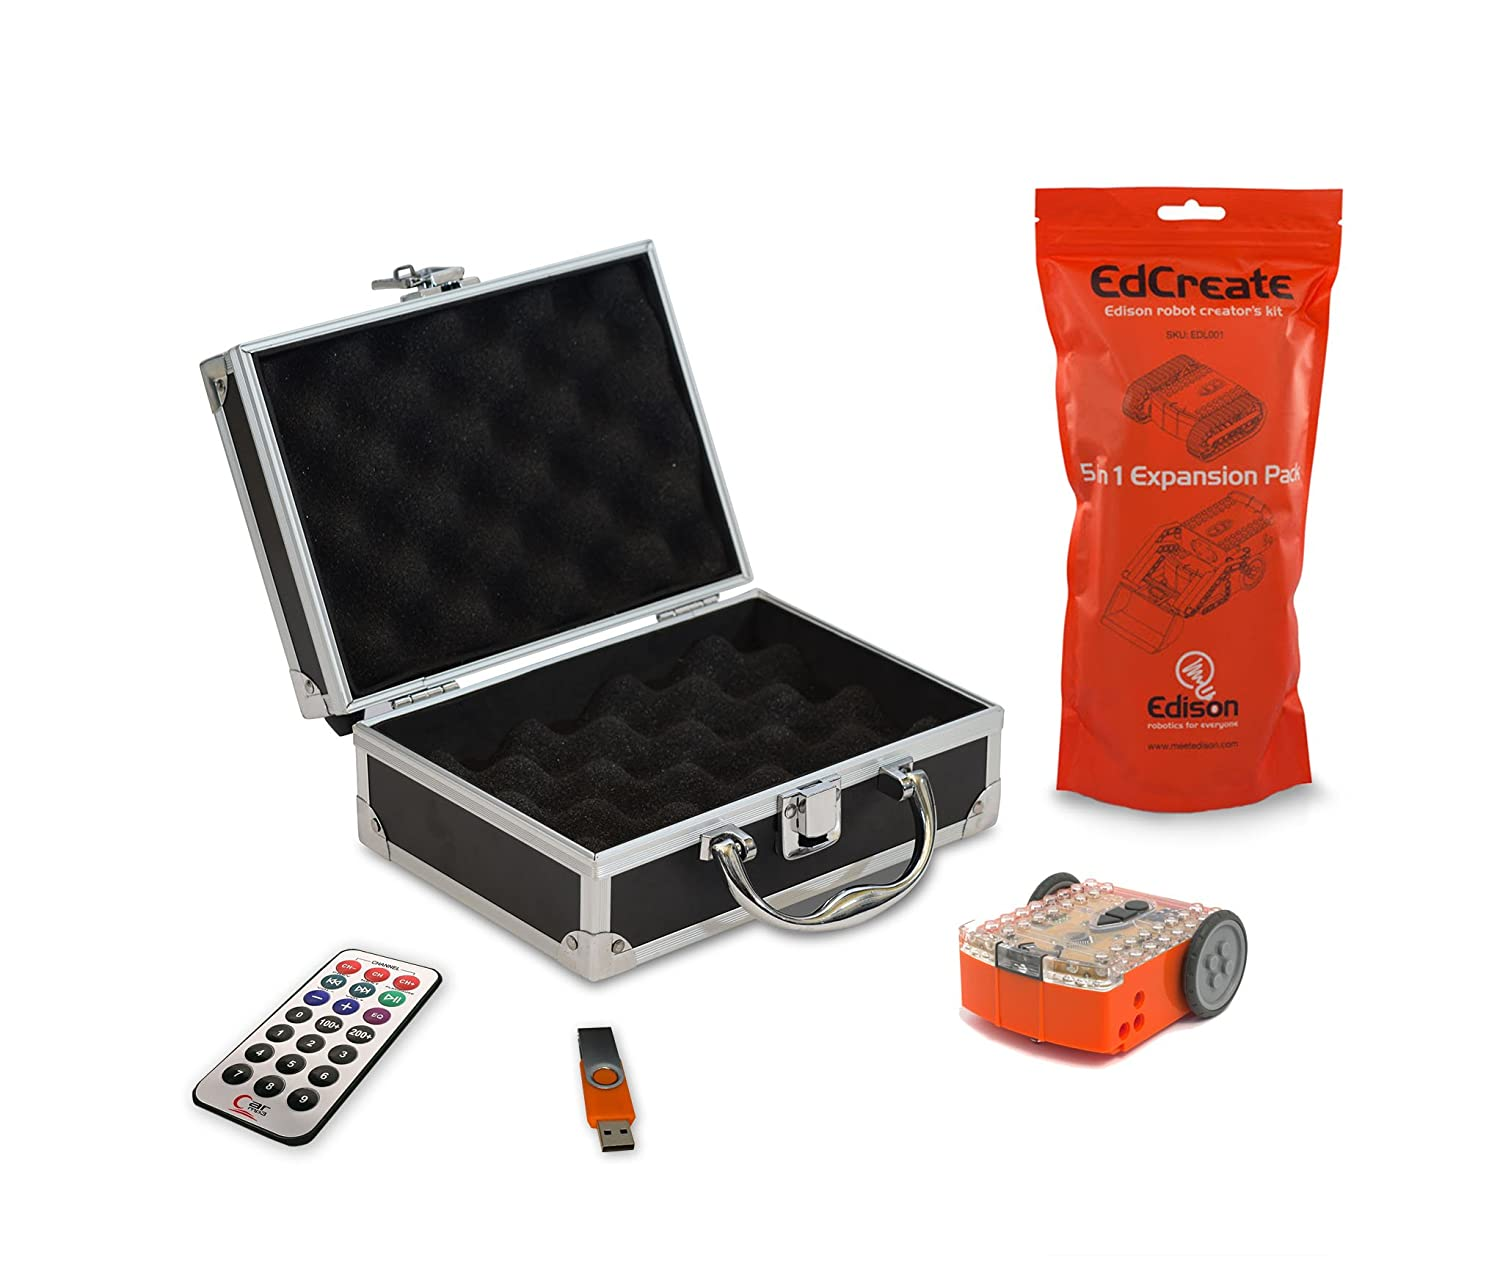 Carrying Case Contempo Views Edison Robot V2 Programmable Educational Bot STEM Coding Kit USB with Software Package Includes IR Remote Resources /& Lesson Plans.